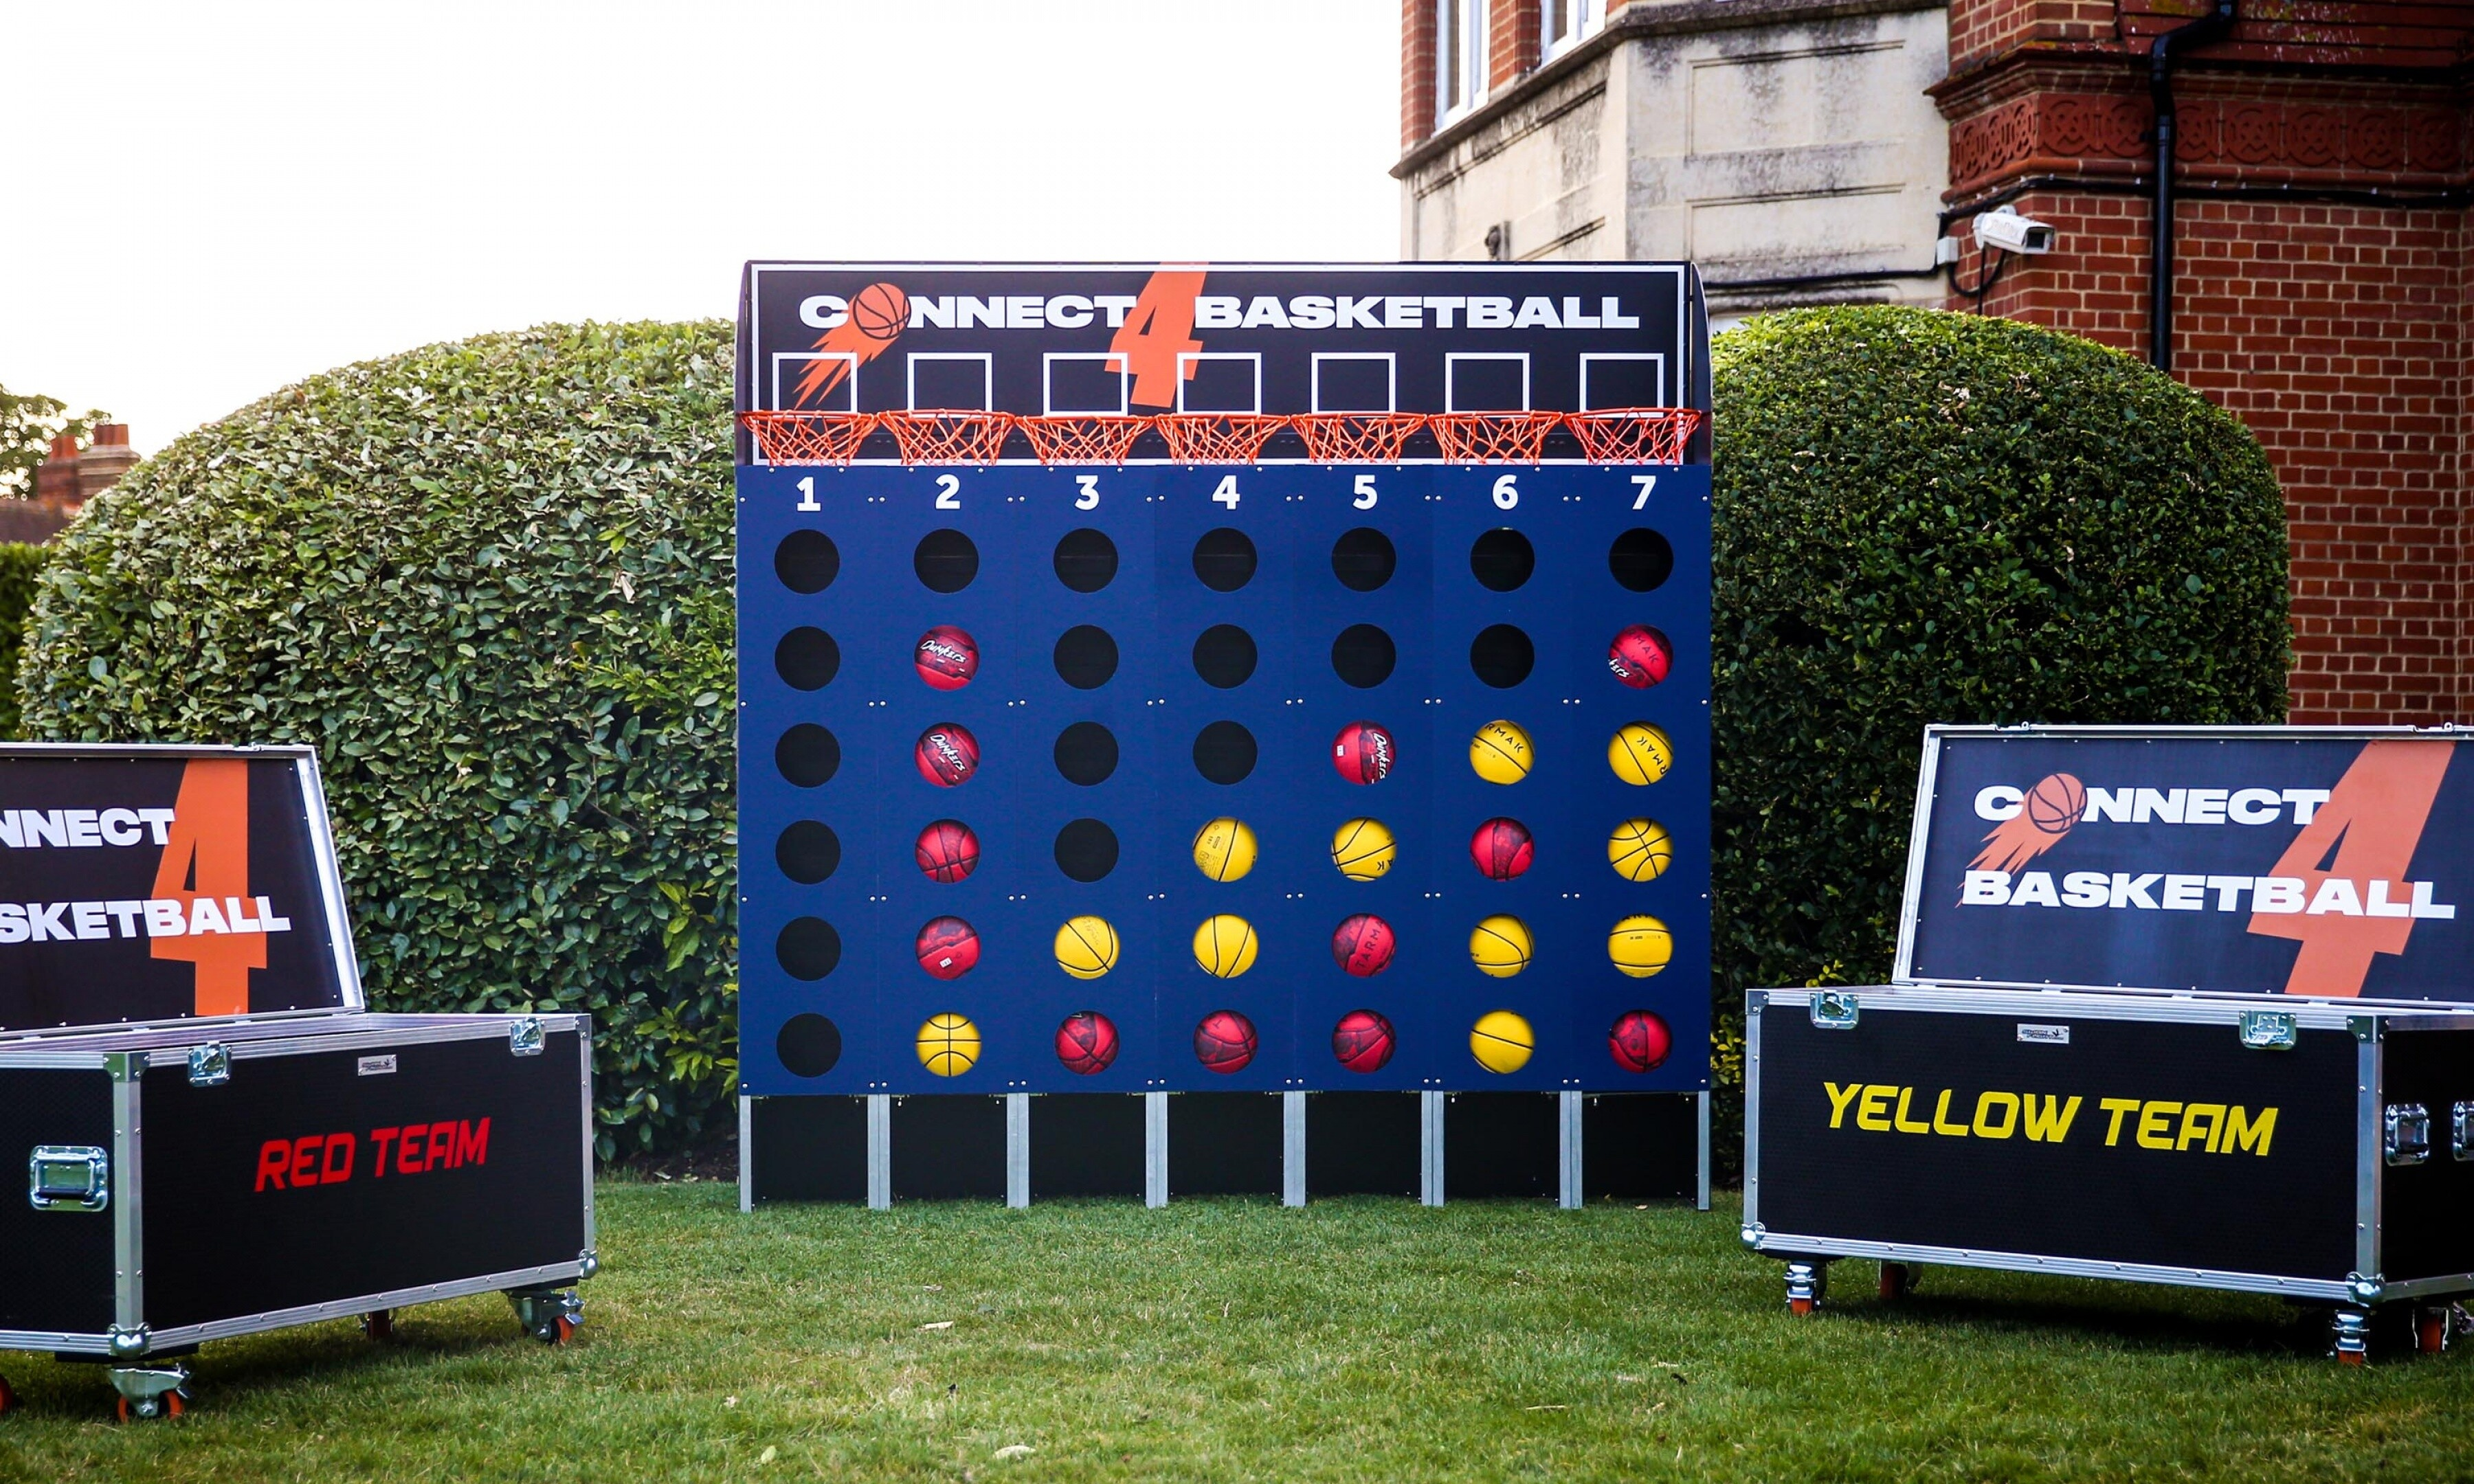 Basketball Connect 4 Hire London Surrey Clownfish Events Woodlands